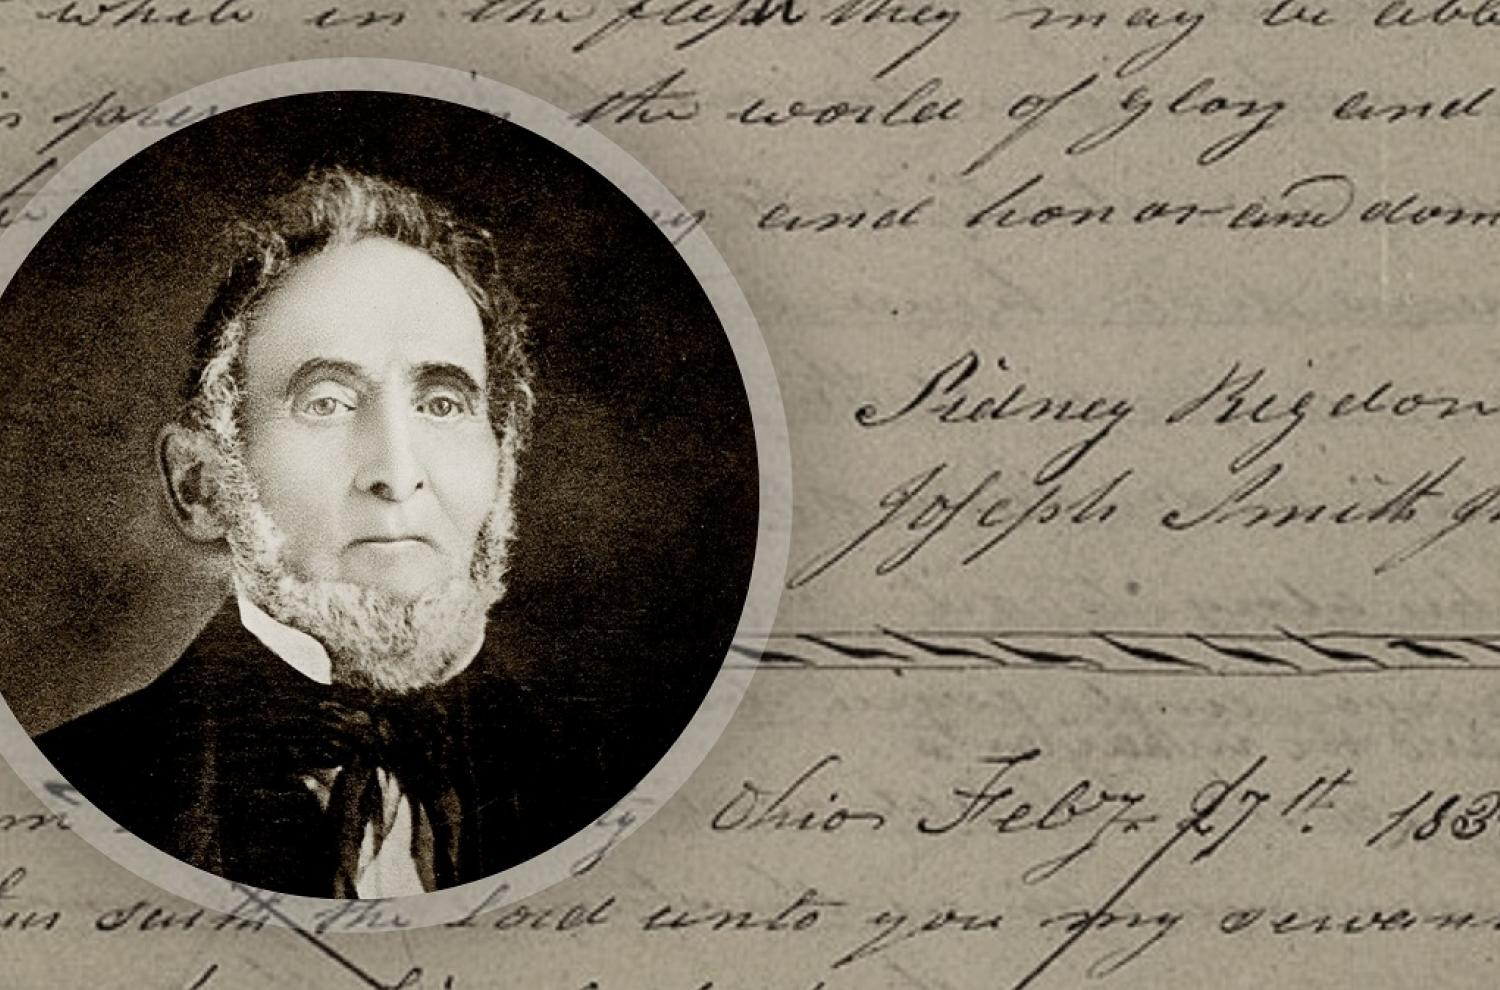 Portrait of Sidney Rigdon with the manuscript of D&C 76 from The Joseph Smith Papers.